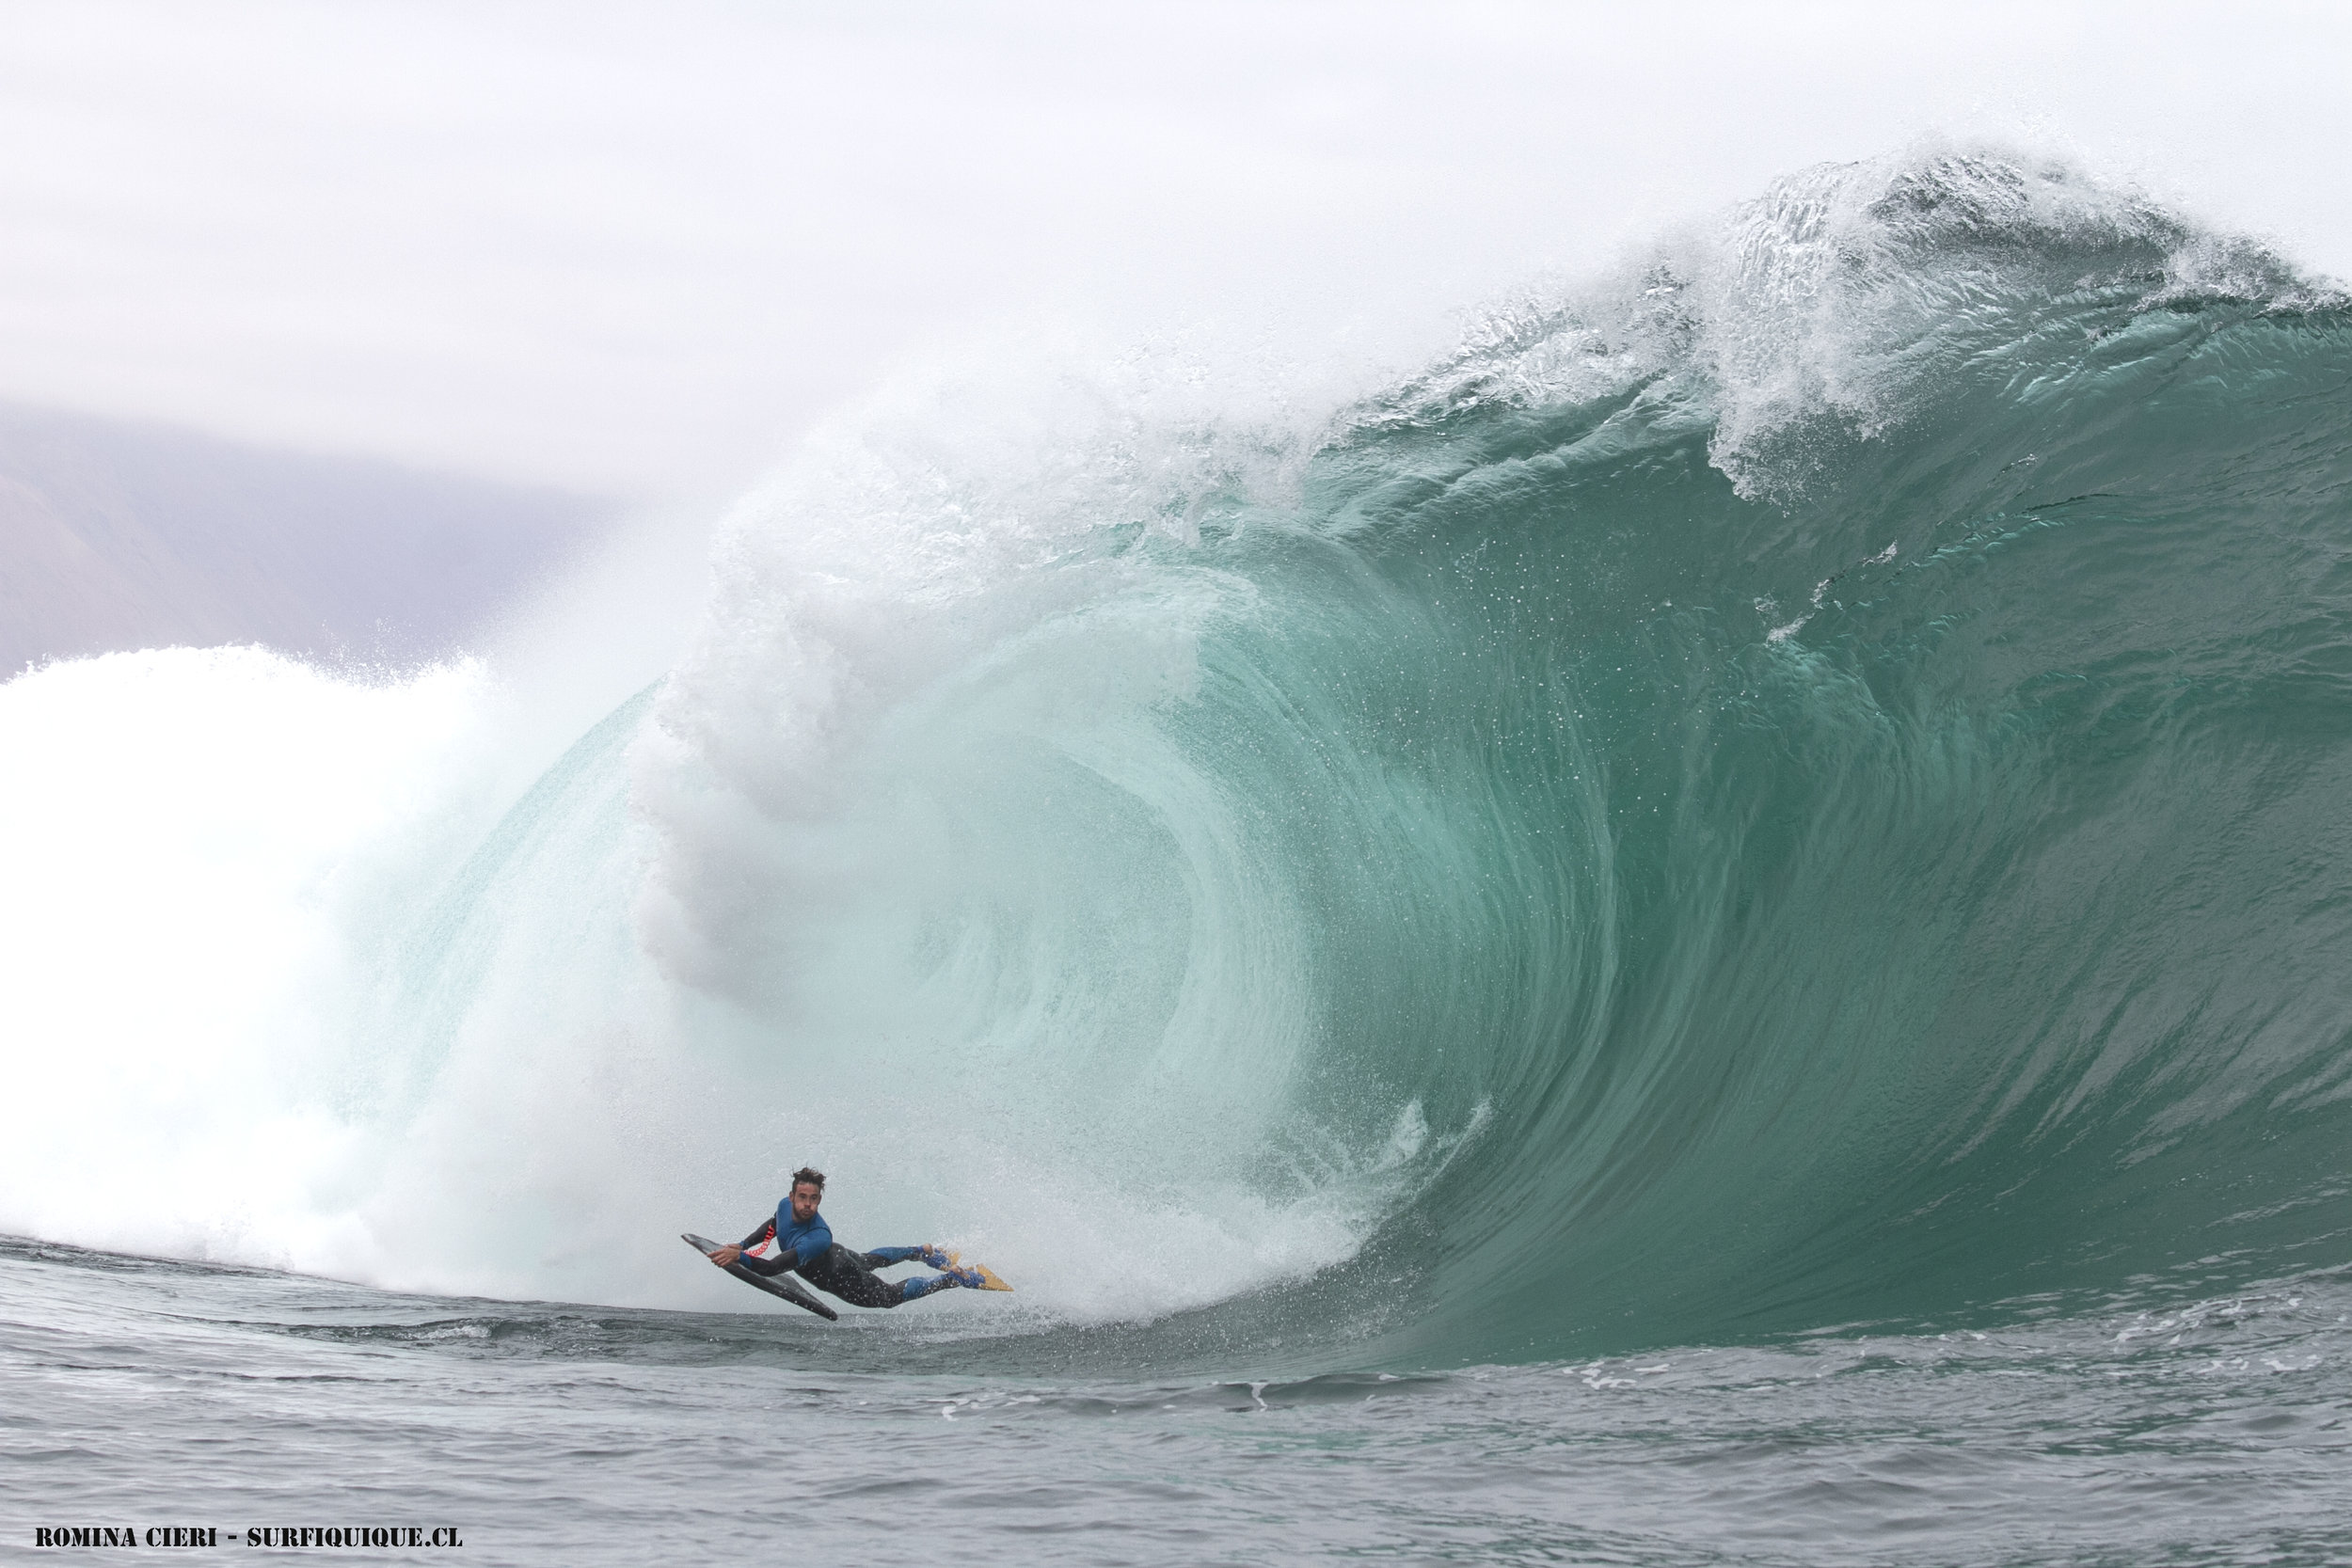 Diego Cabrera  from the Canary Islands tackles the beast around the same time I was there. Photo by Argentine surfer/model  Romina Cieri